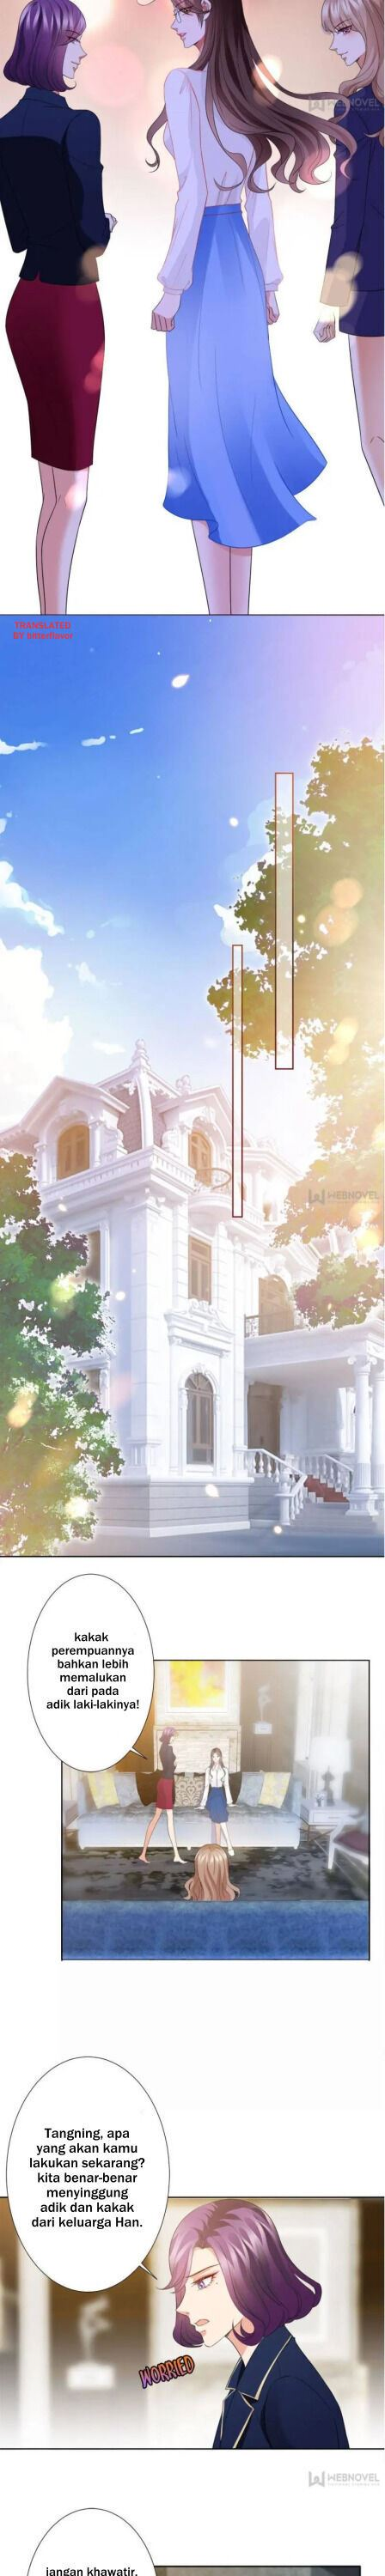 Trial Marriage Husband: Need to Work Hard Chapter 32